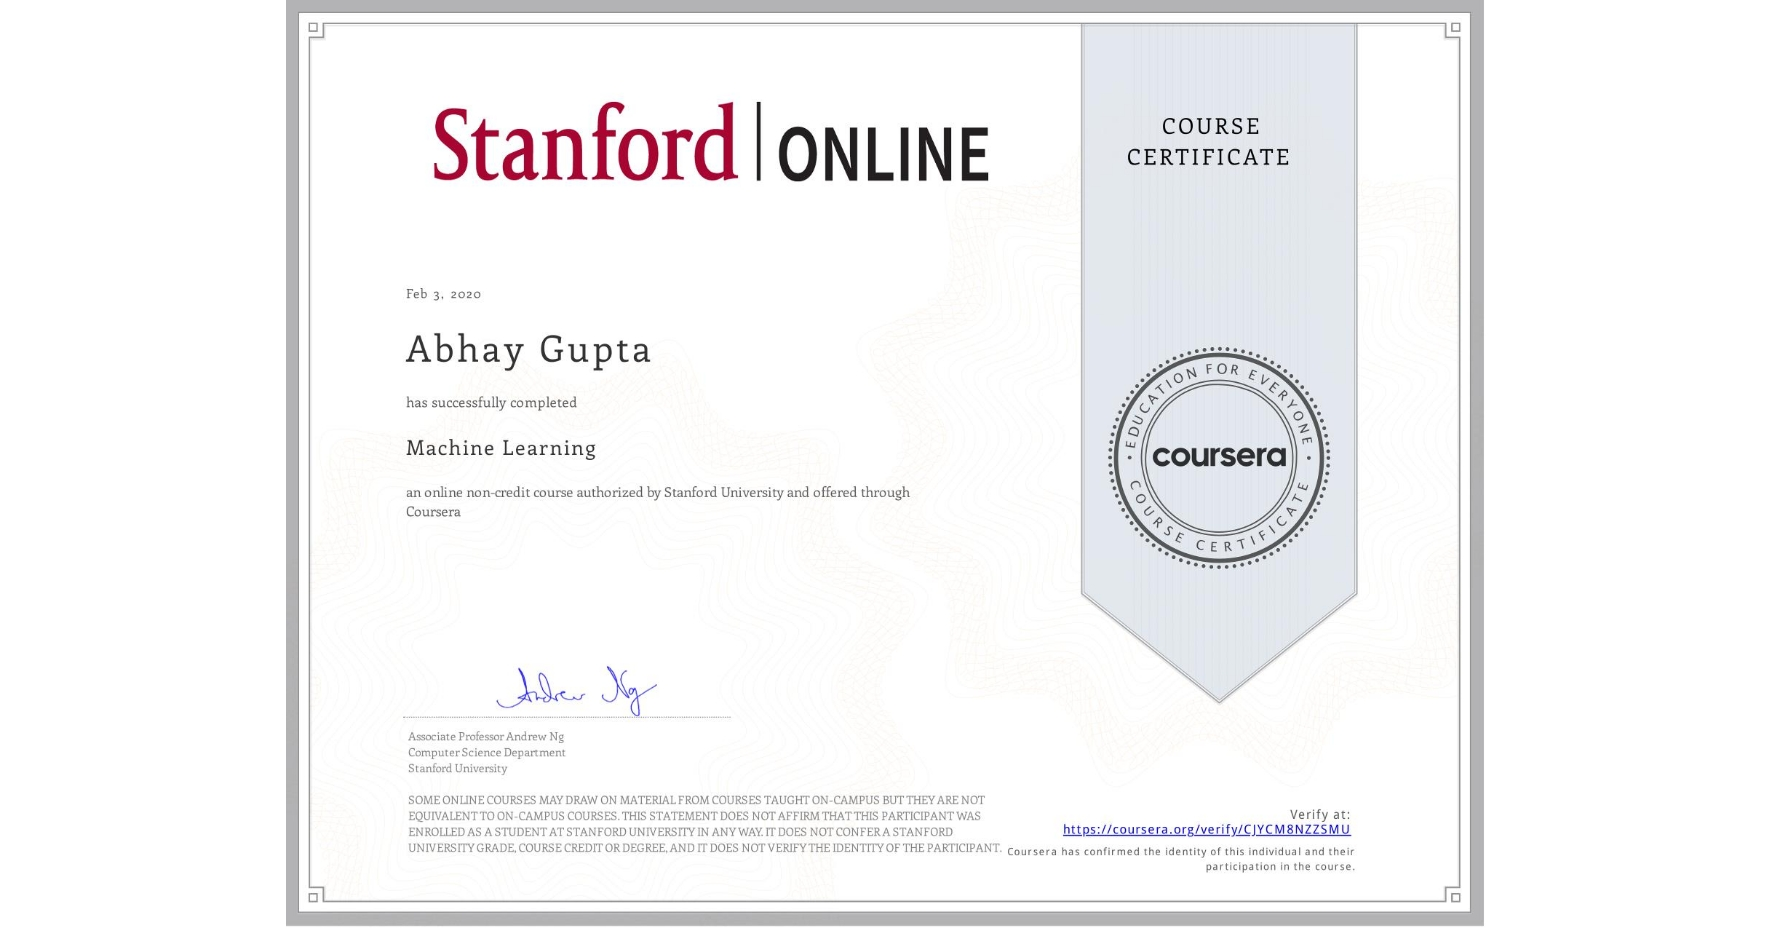 View certificate for Abhay Gupta, Machine Learning, an online non-credit course authorized by Stanford University and offered through Coursera